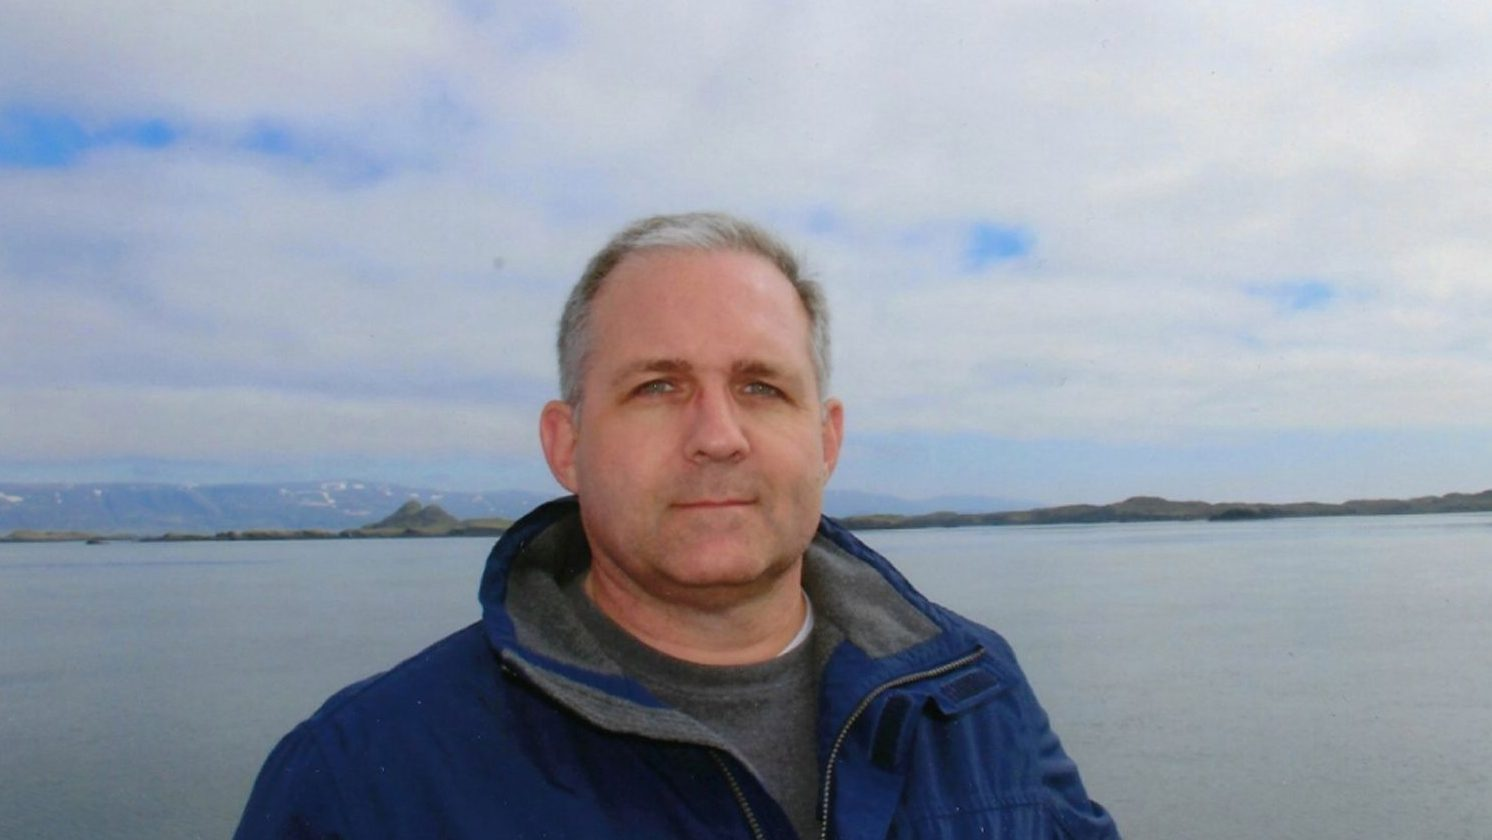 What we know about Paul Whelan, American held by Russia as